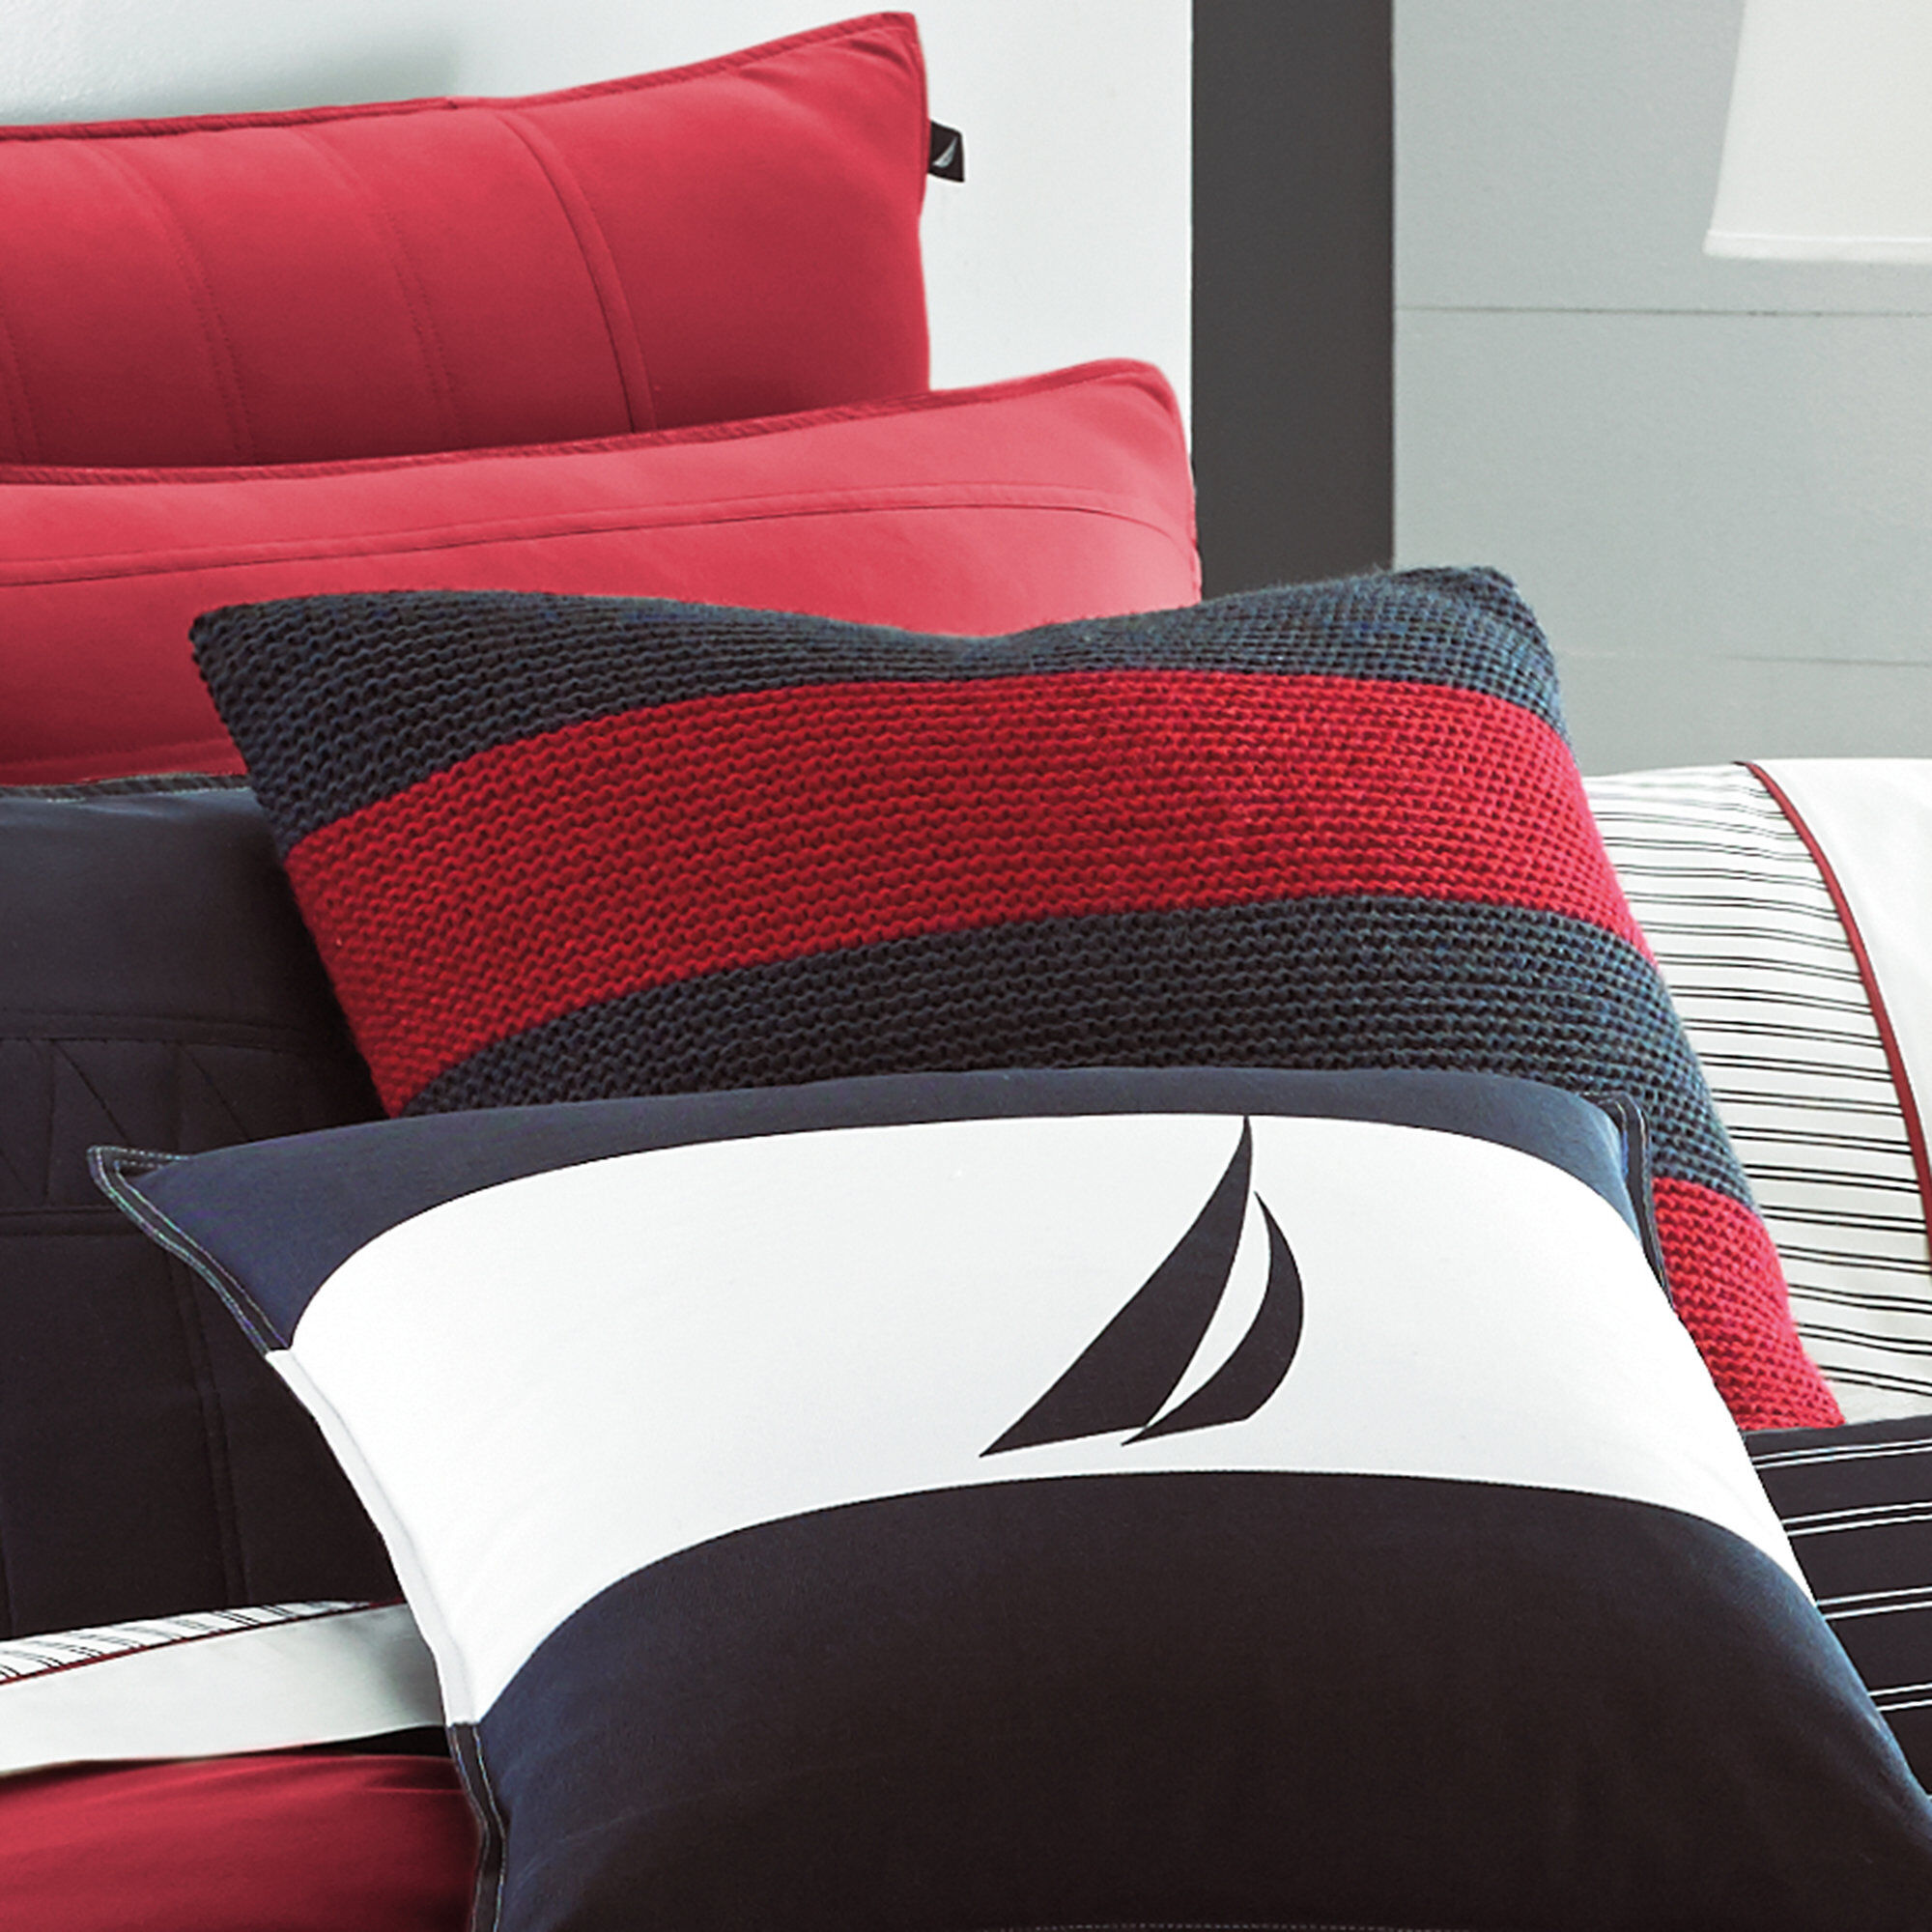 Nautica Mainsail Striped Sweater-Knit Throw Pillow